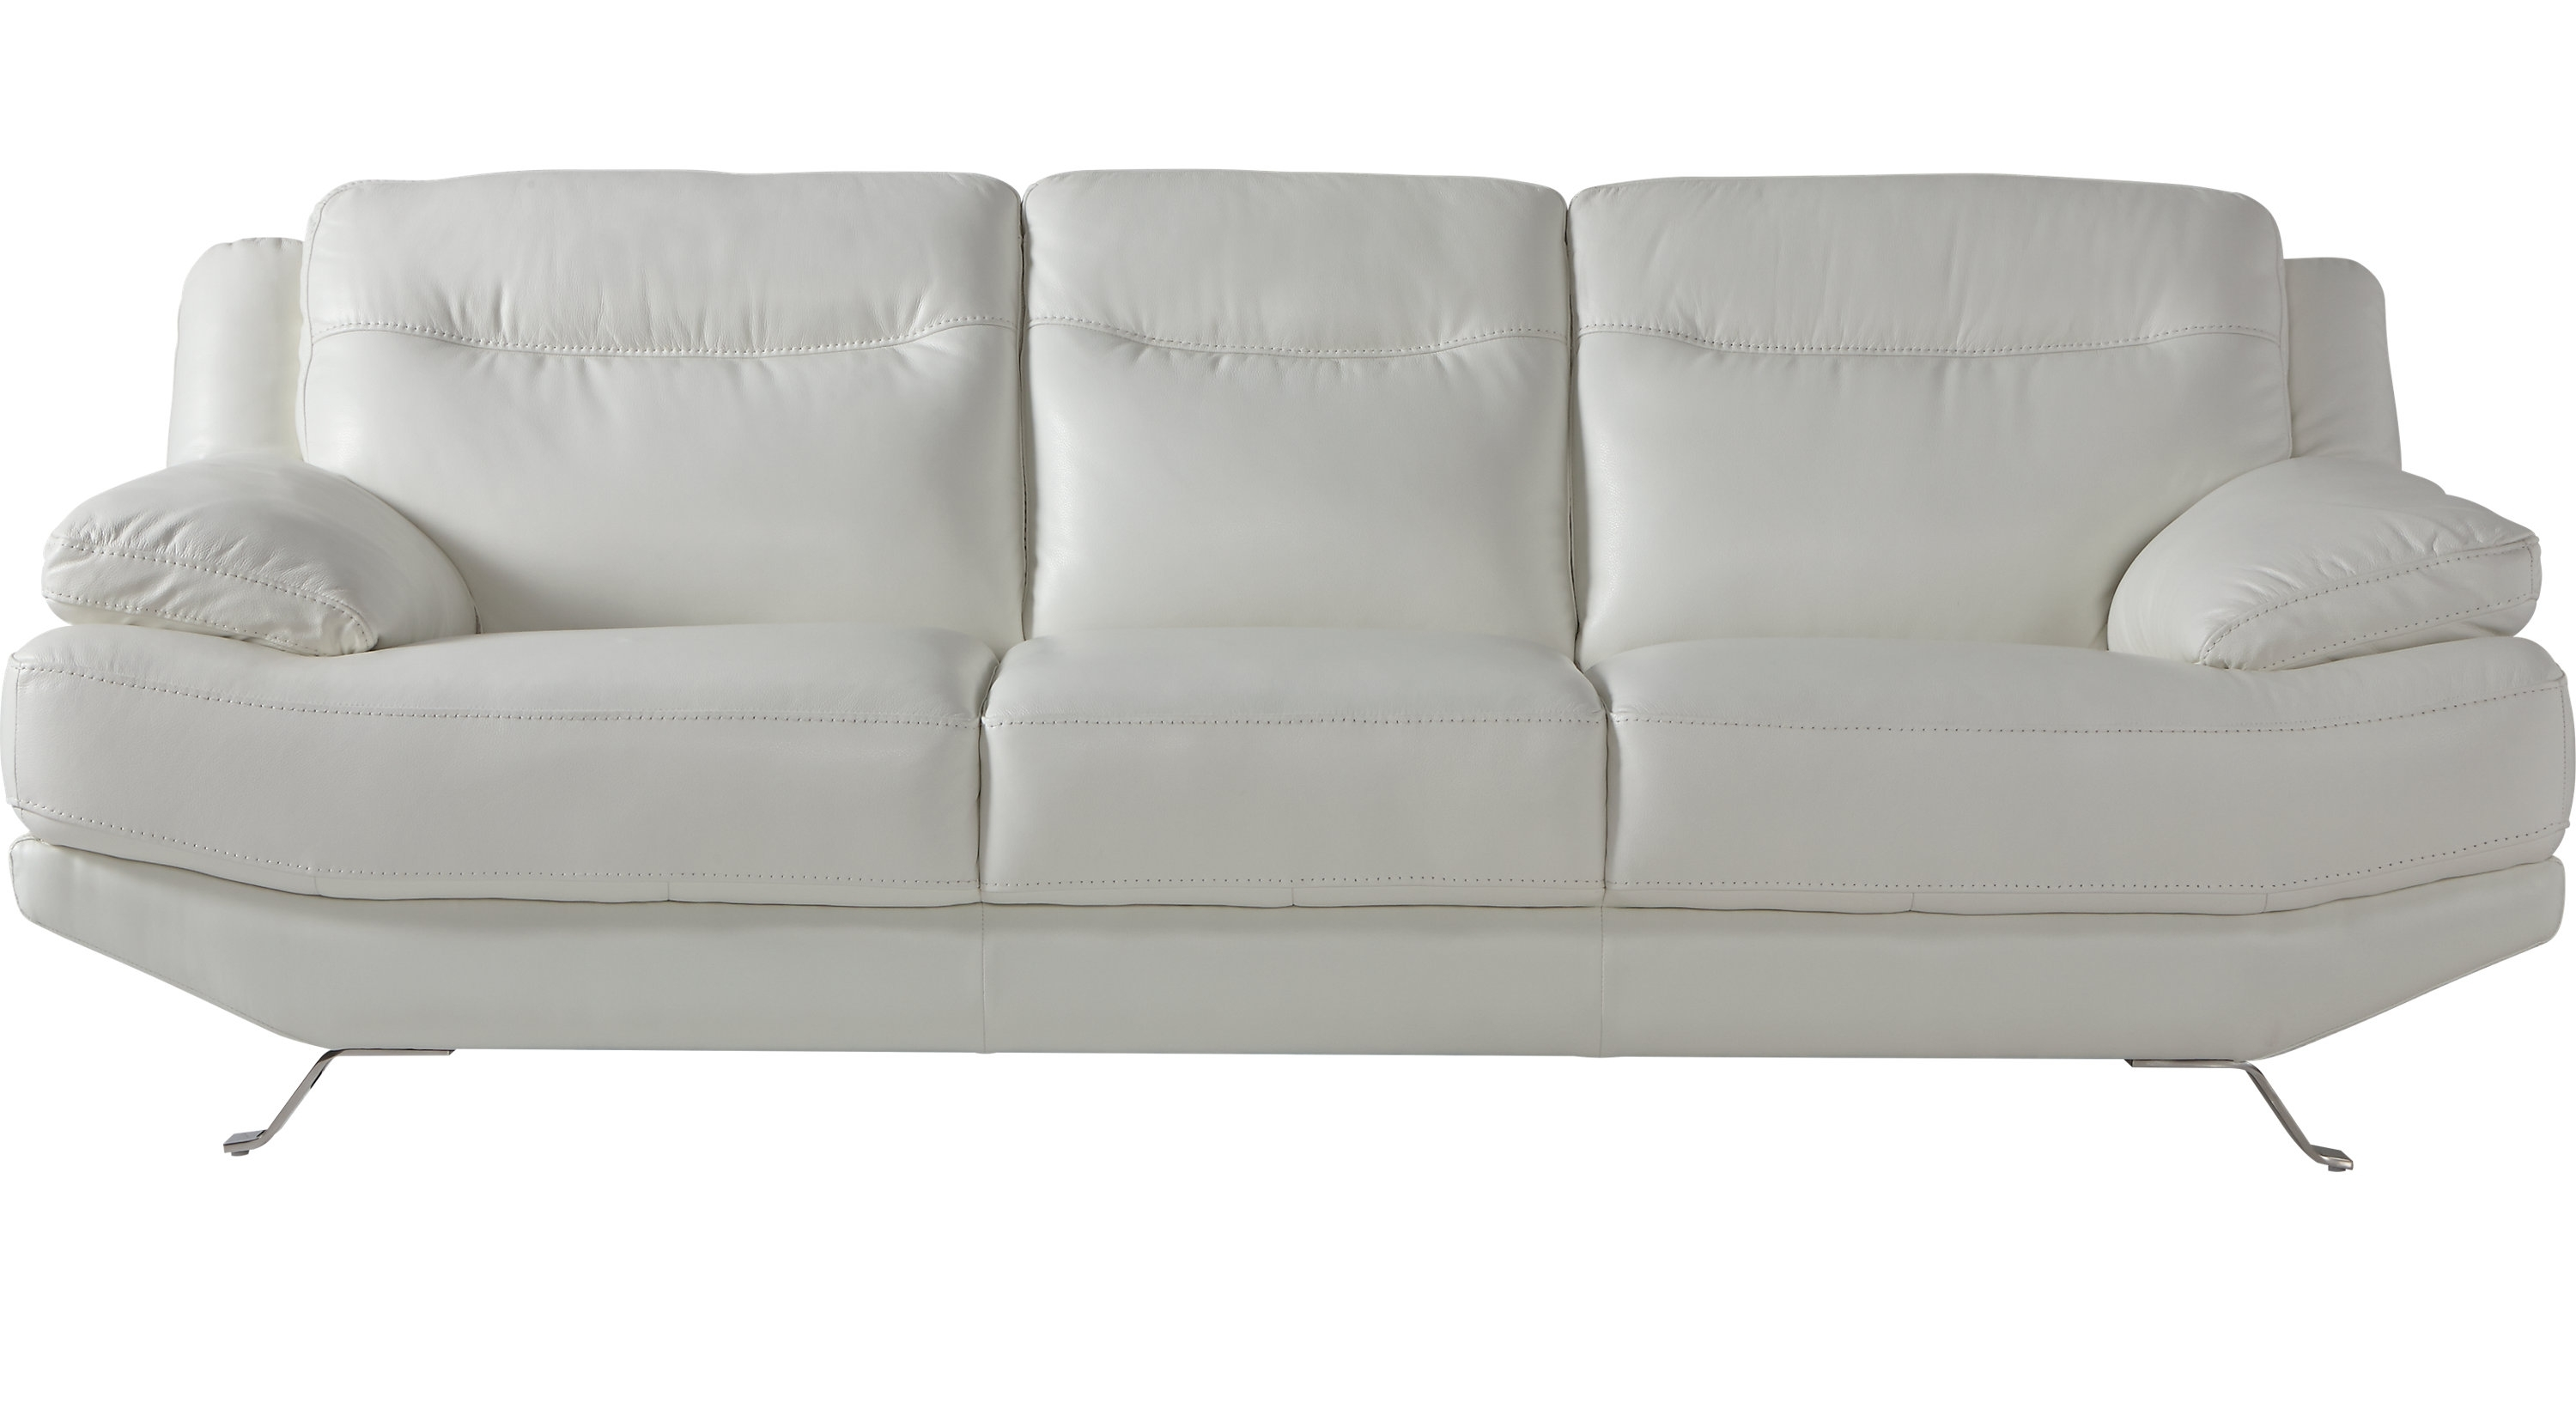 Preferred White Leather Sofas Regarding White Leather Sofas & Couches (View 13 of 20)